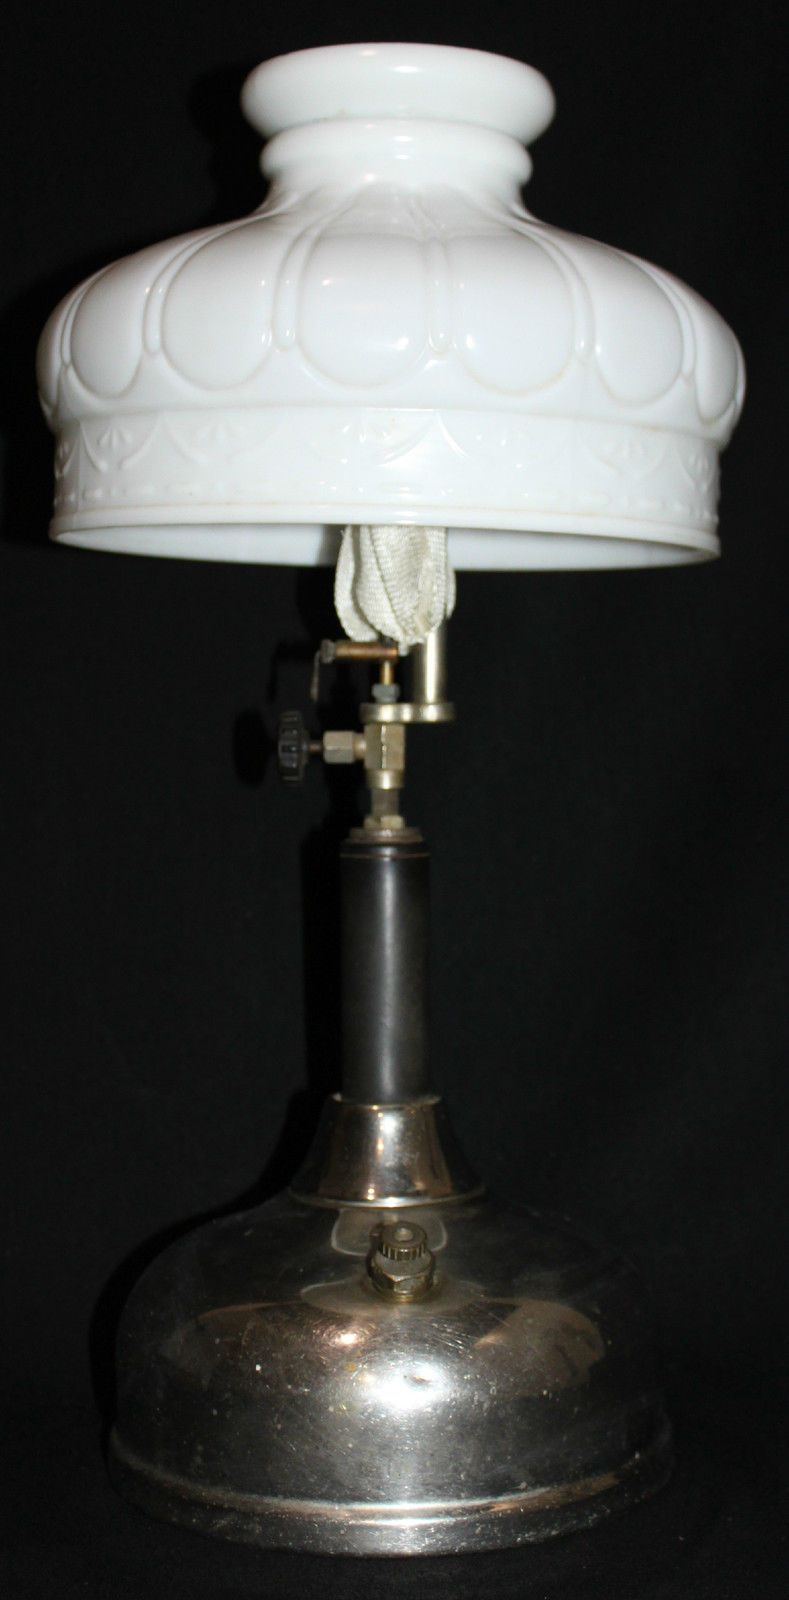 Vintage Coleman Quick Lite Gas Lantern Camping Table Lamp Milk Gl Shade H0